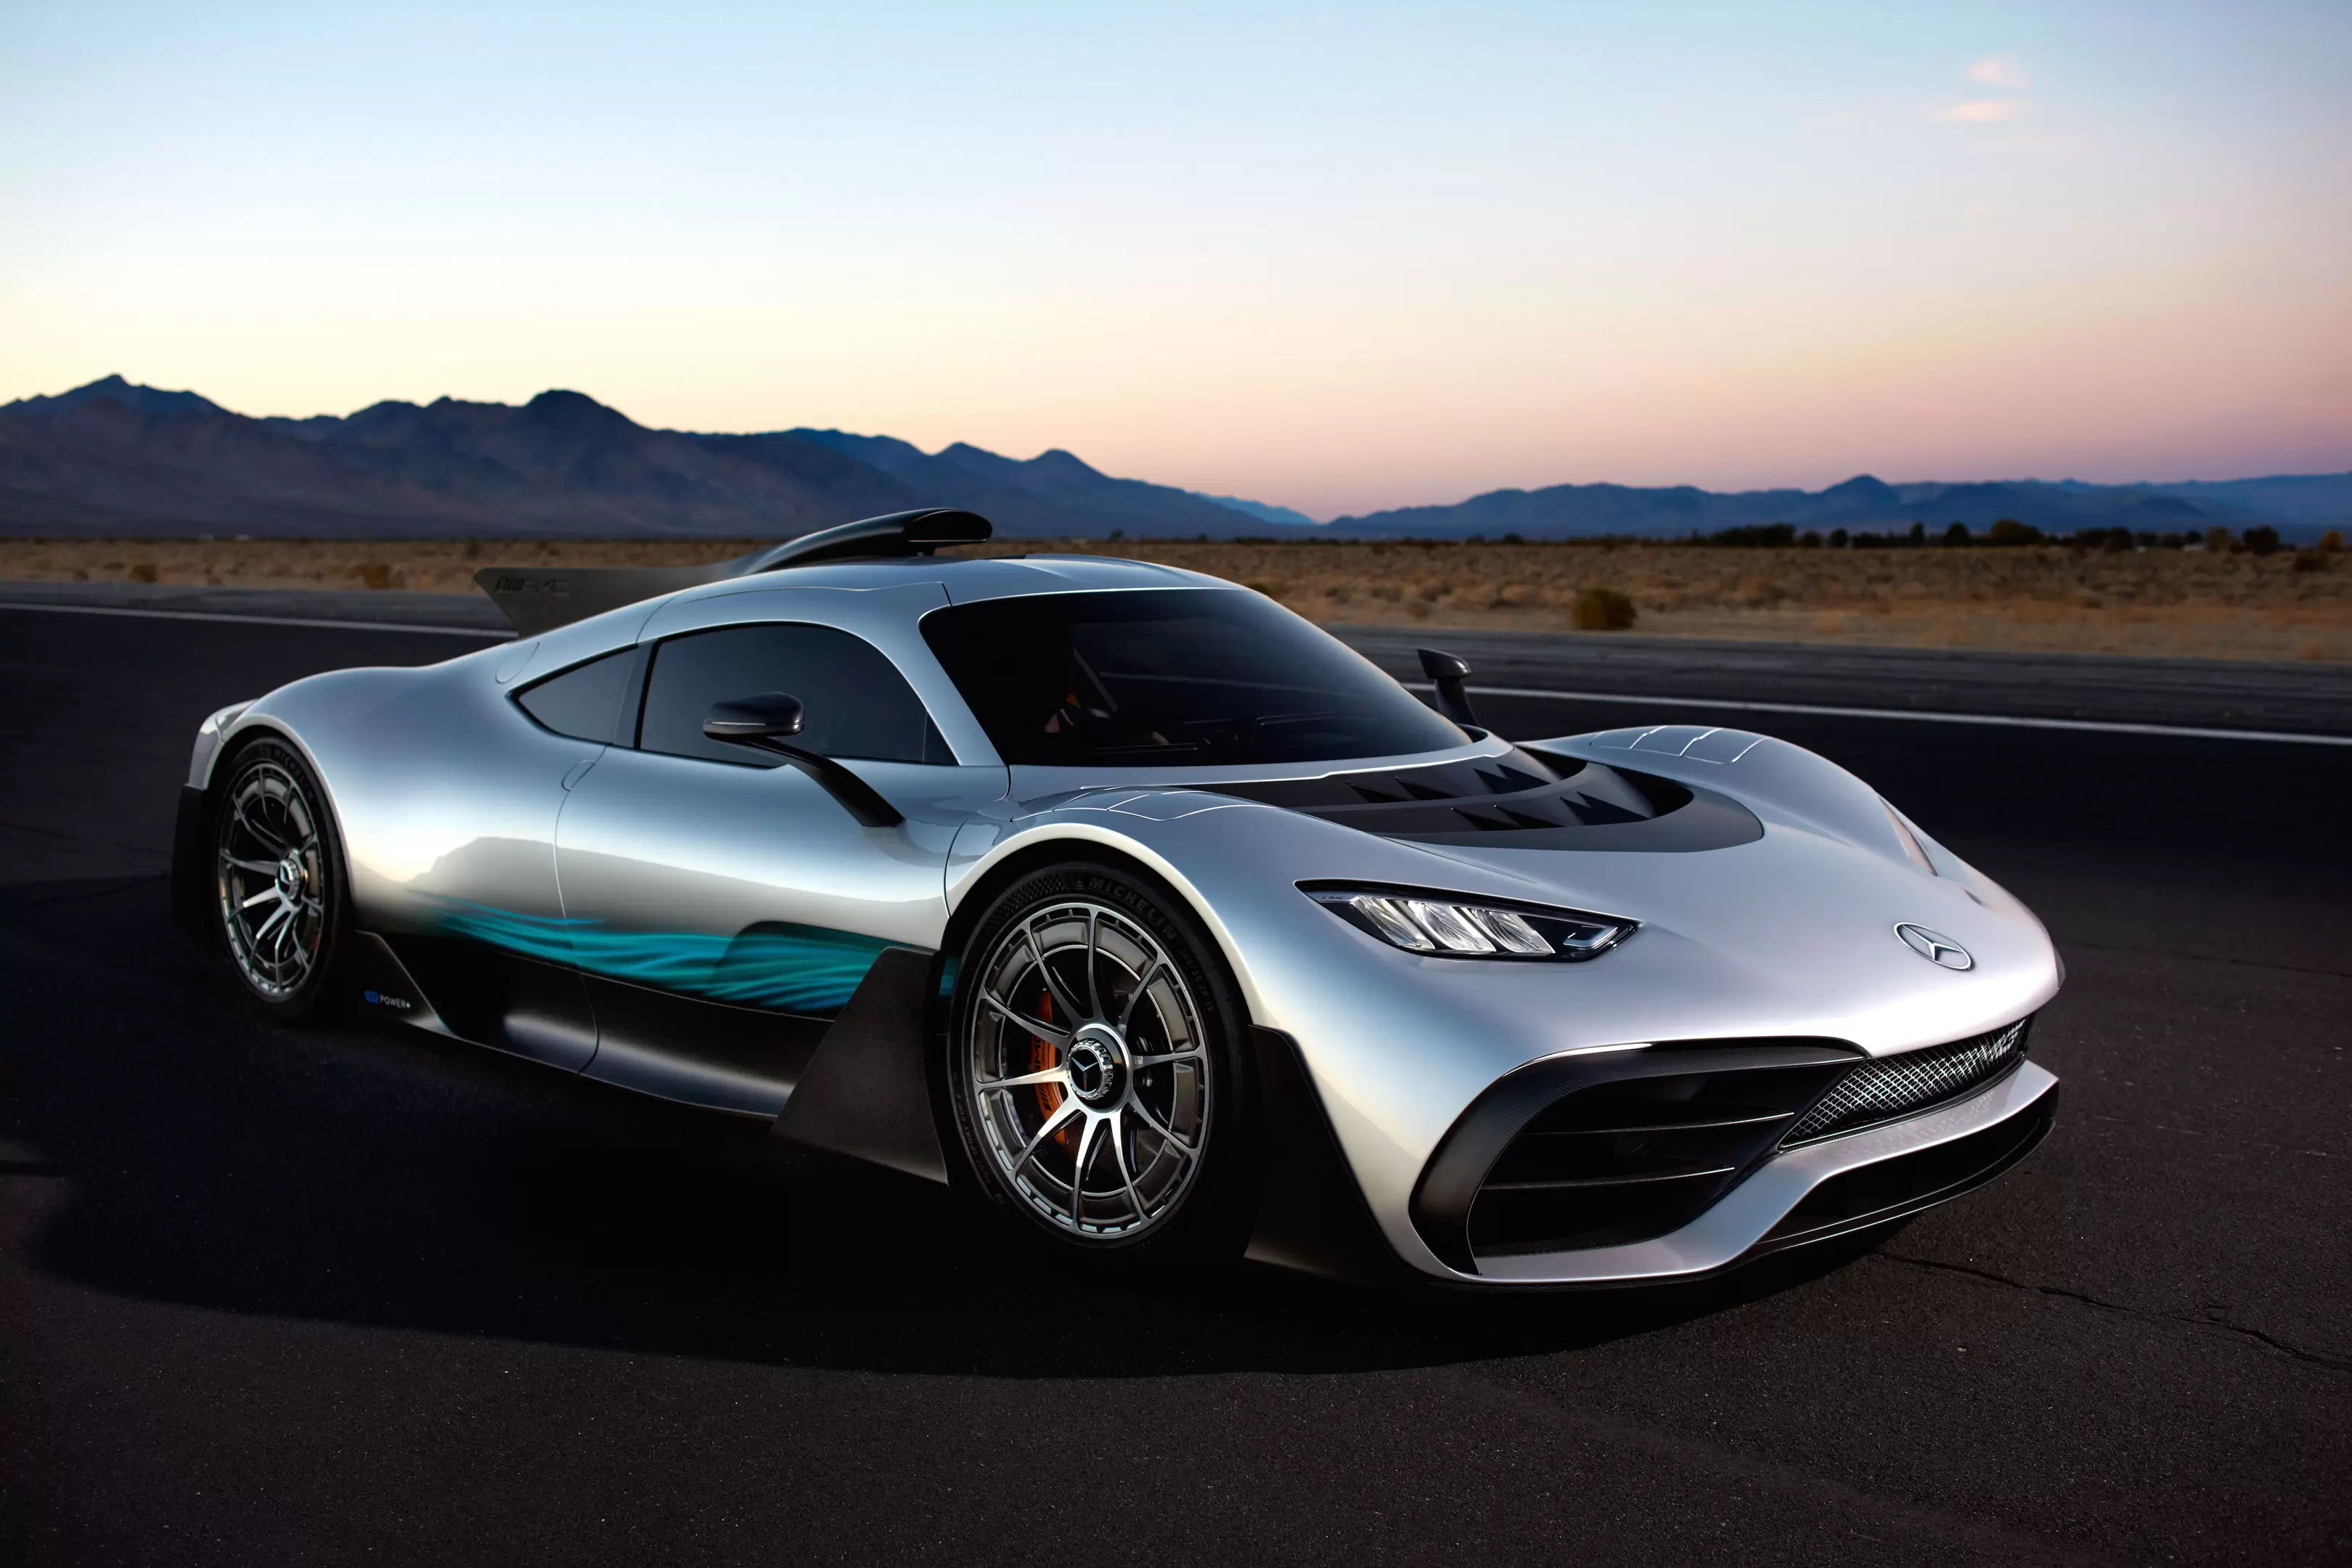 Mercedes Amg The Mercedes Amg Project One Is A 350kph Beast Of A Hypercar